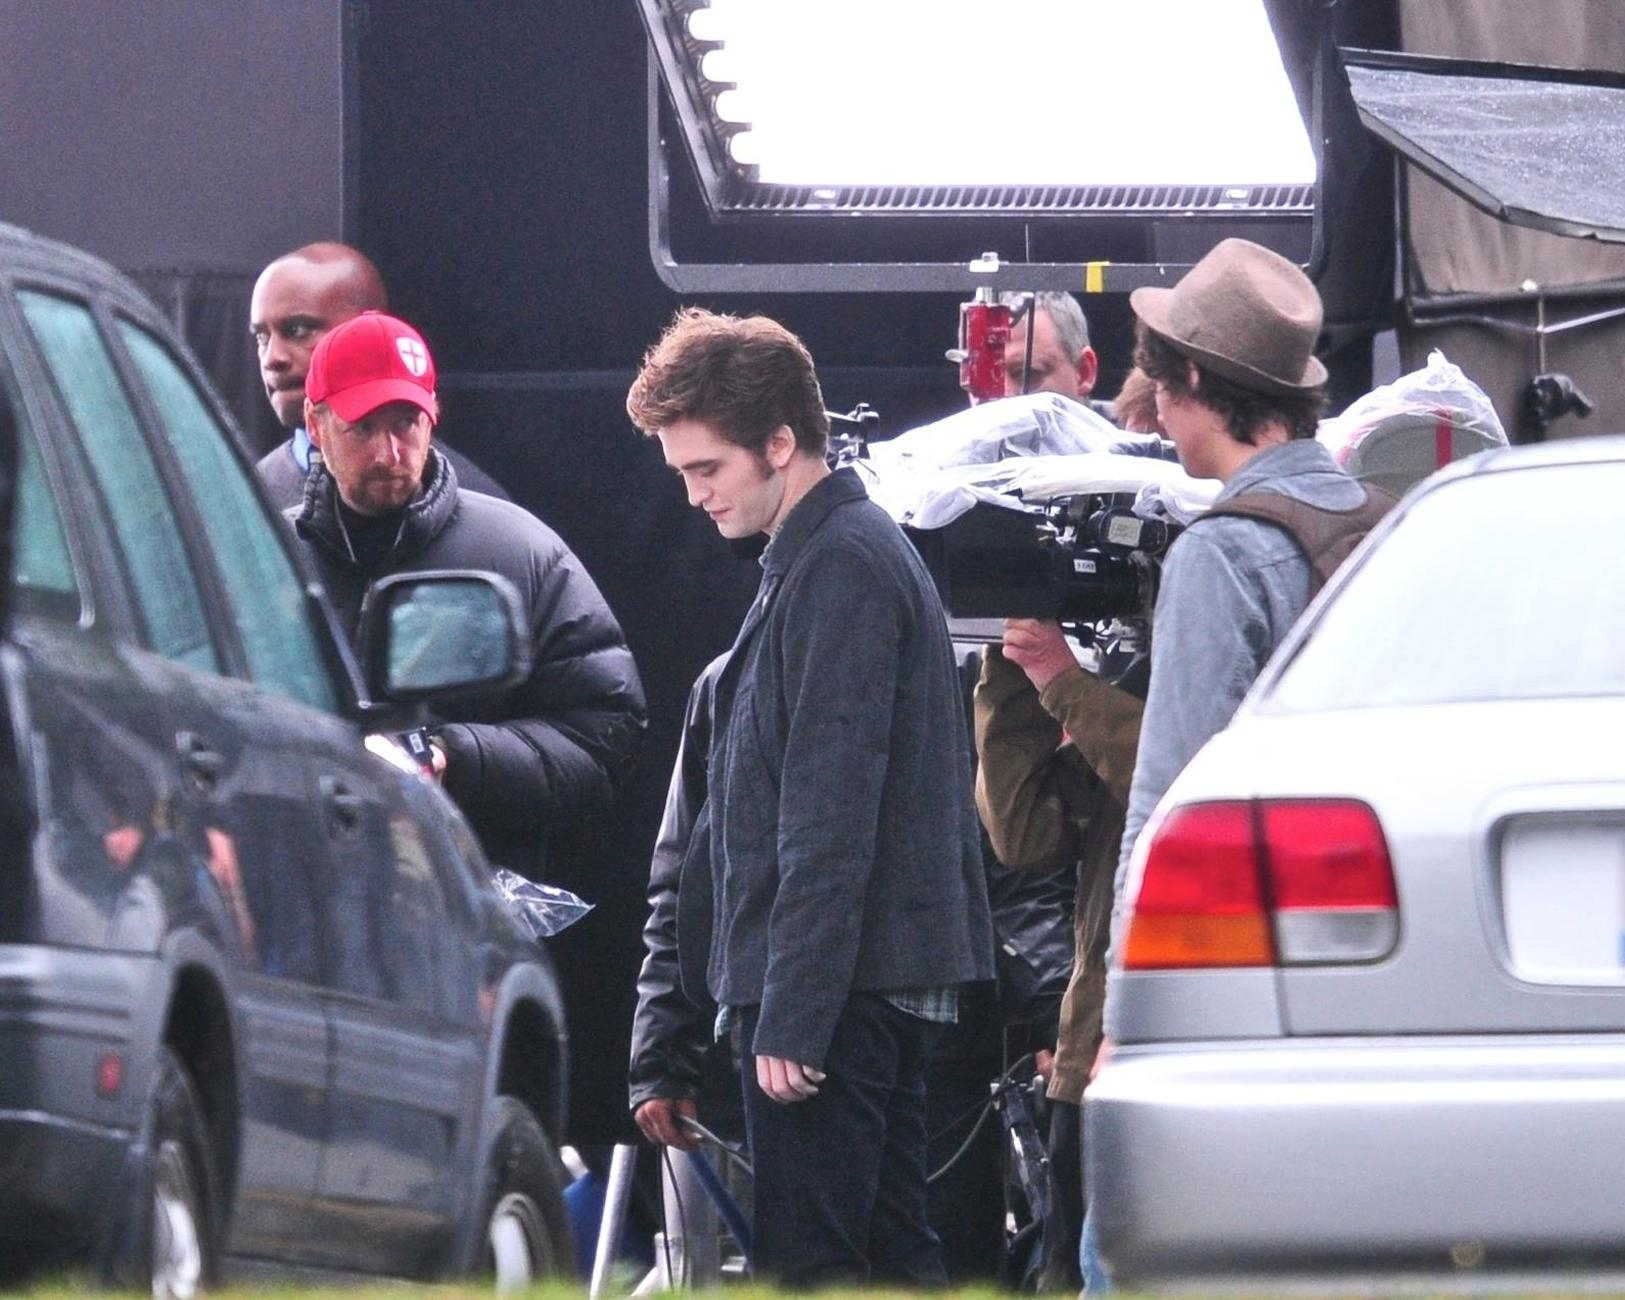 From the Eclipse filming set